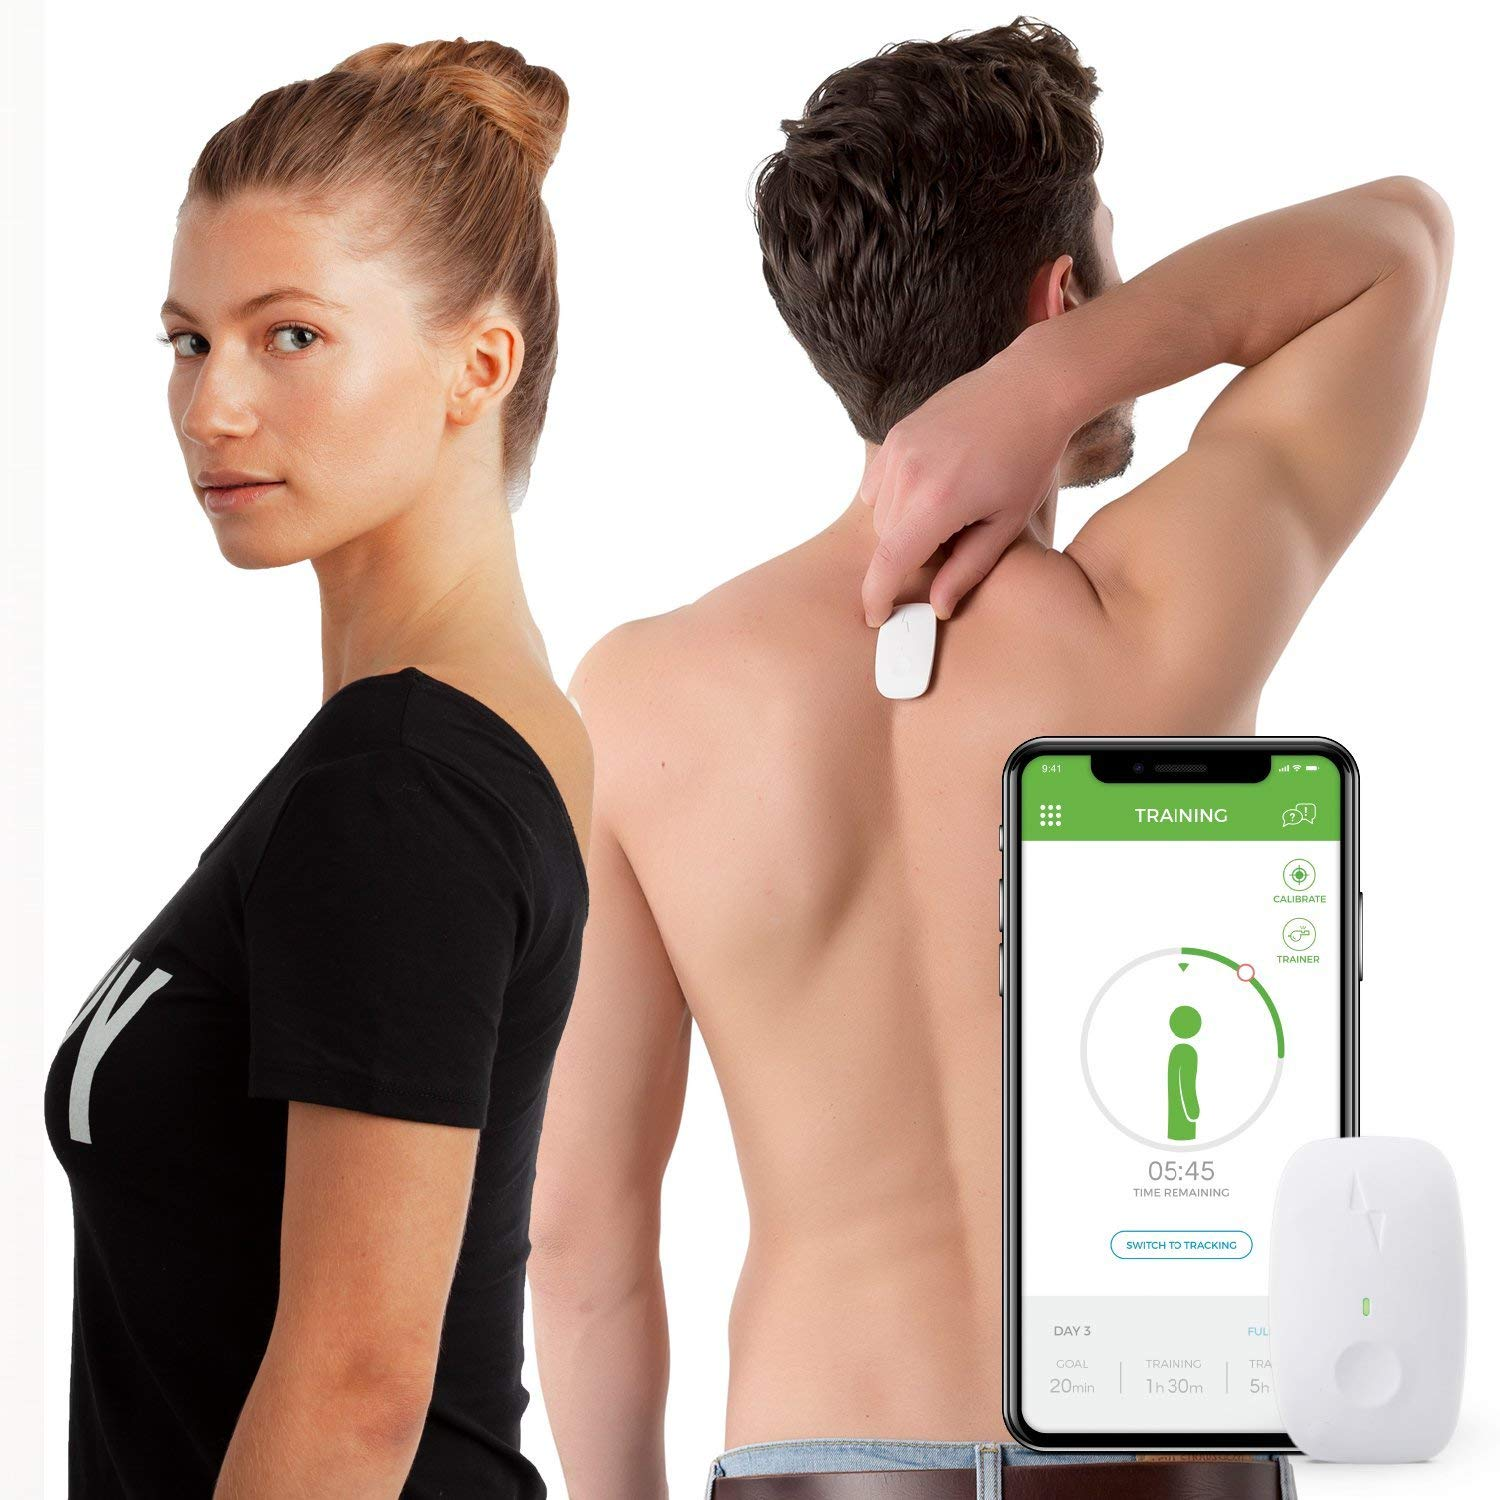 Upright Go posture trainer - #wearabledevice #healthmonitor #posture #affiliate #amazon